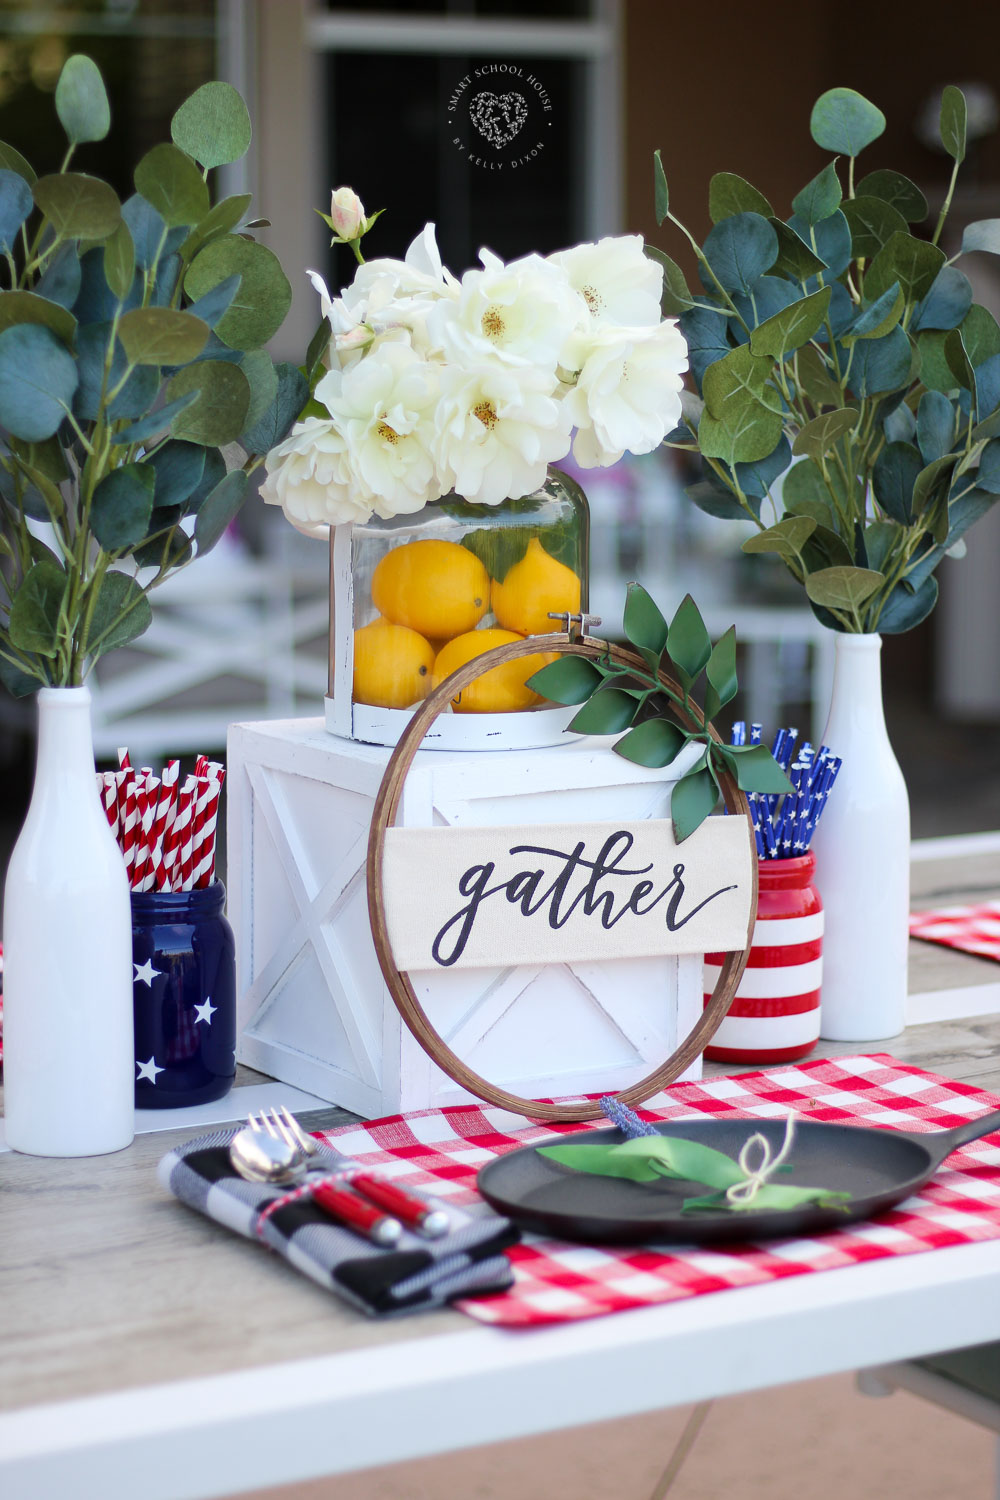 Best Beautiful Red White And Blue Table Decorations For July 4Th This Month